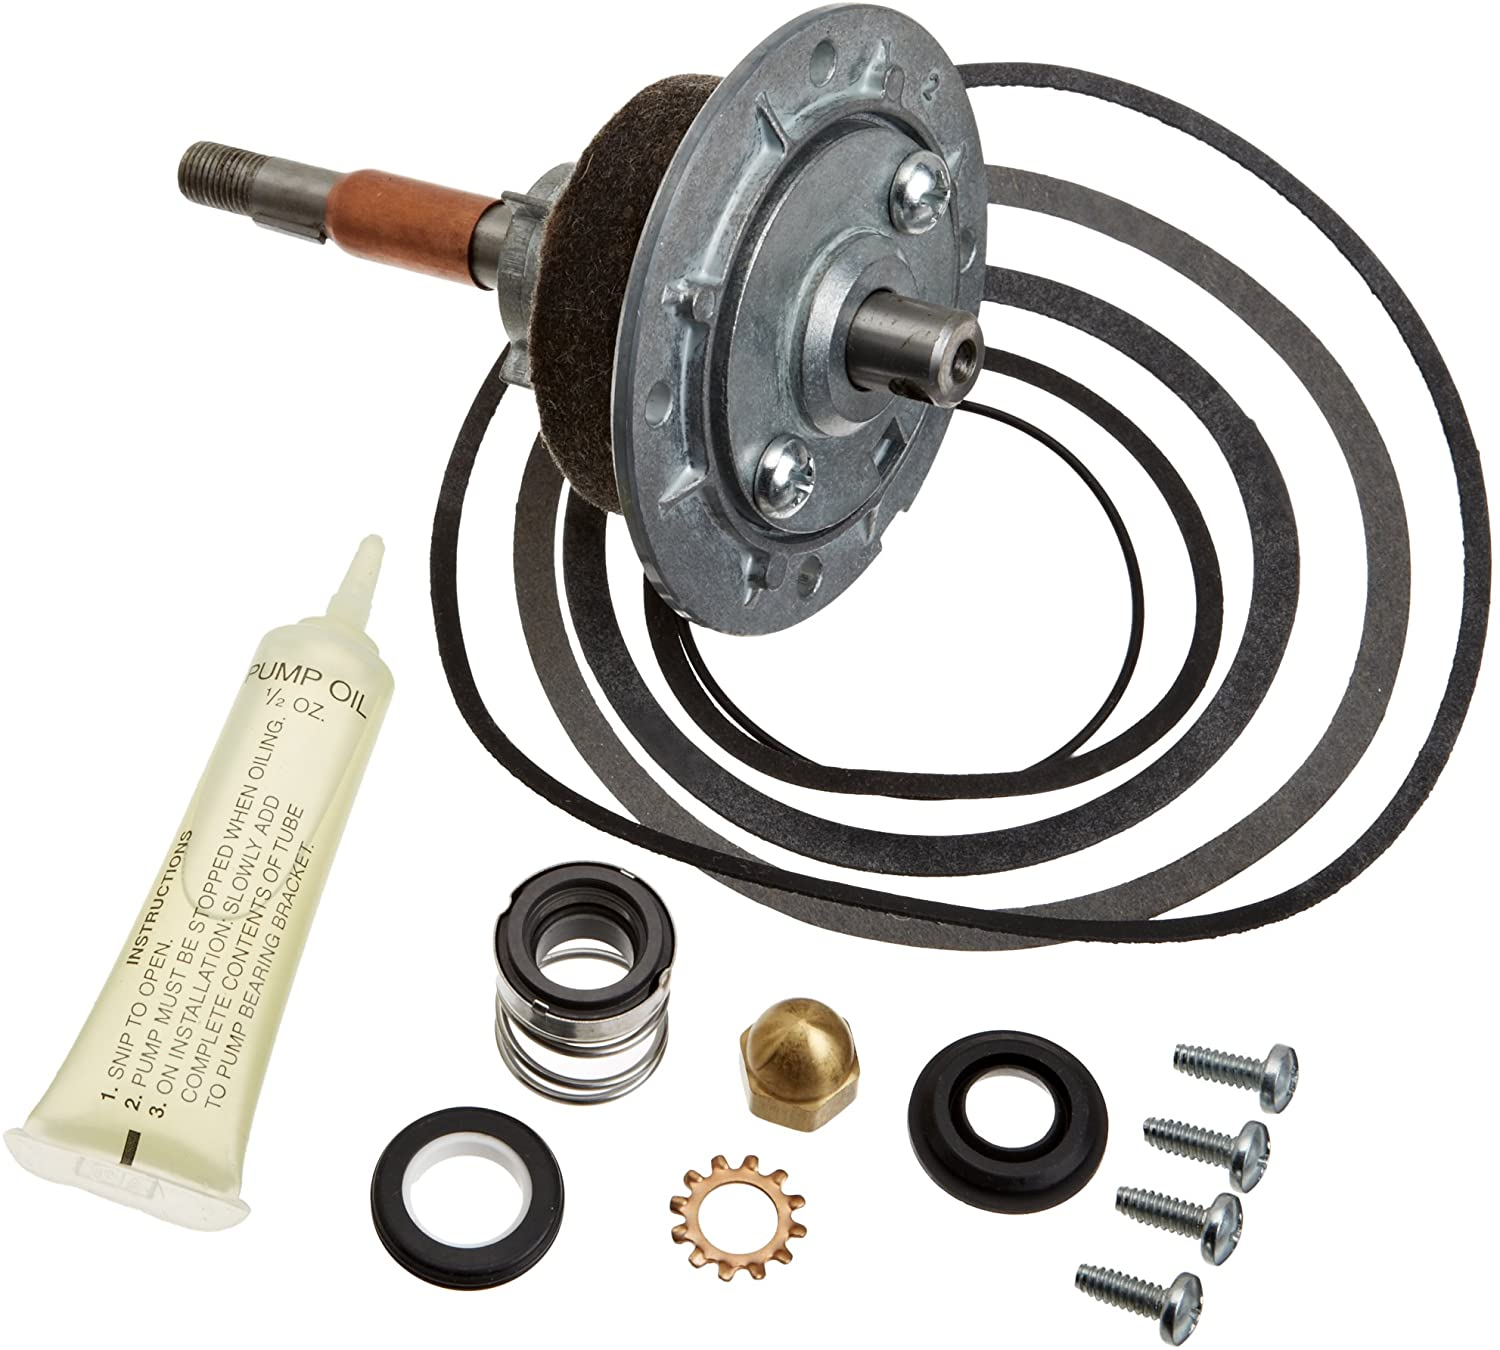 Pentair A2010100 Shaft and Bearing Pump Module Replacement MT Commercial Pool Heater